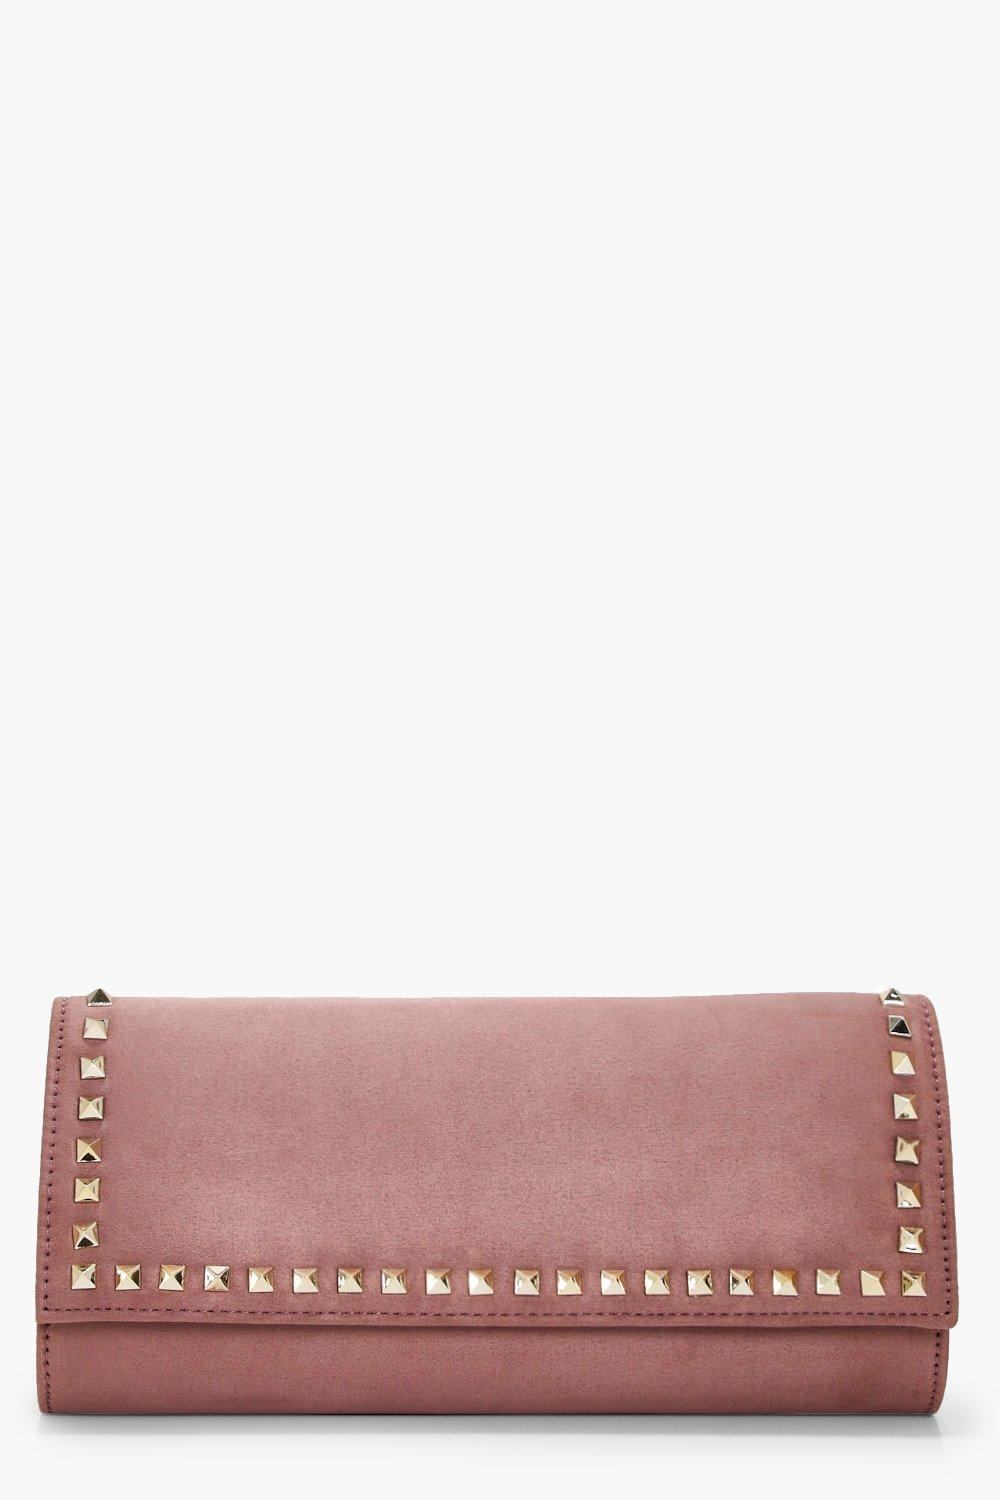 Studded Clutch - nude - Erin Studded Clutch - nude